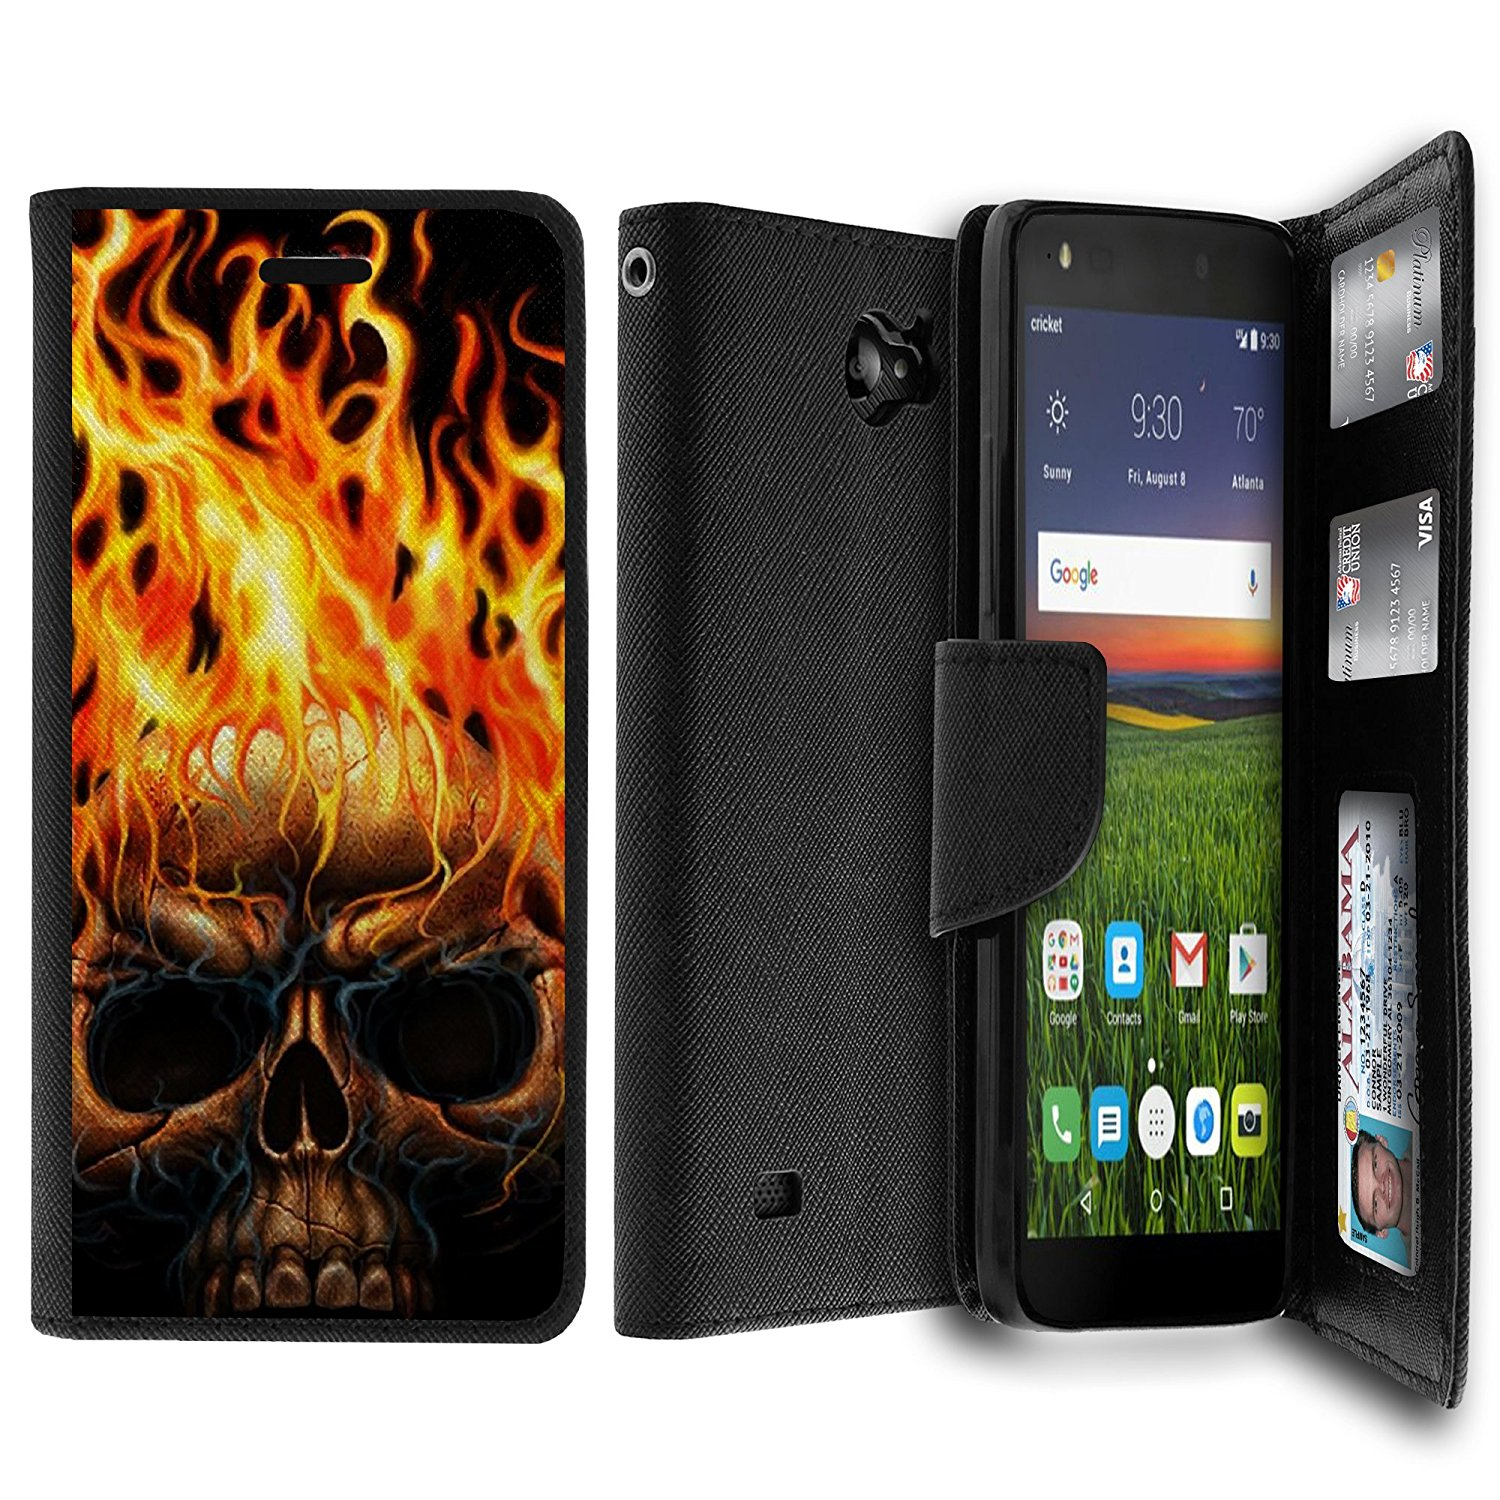 Untouchble Case for ZTE Majesty Pro Case, Majesty Pro Wallet Case Case [MAX WALLET] Wallet Cover Synthetic Wallet Case Interior TPU Case Money Slots ID Case - Skull on Fire